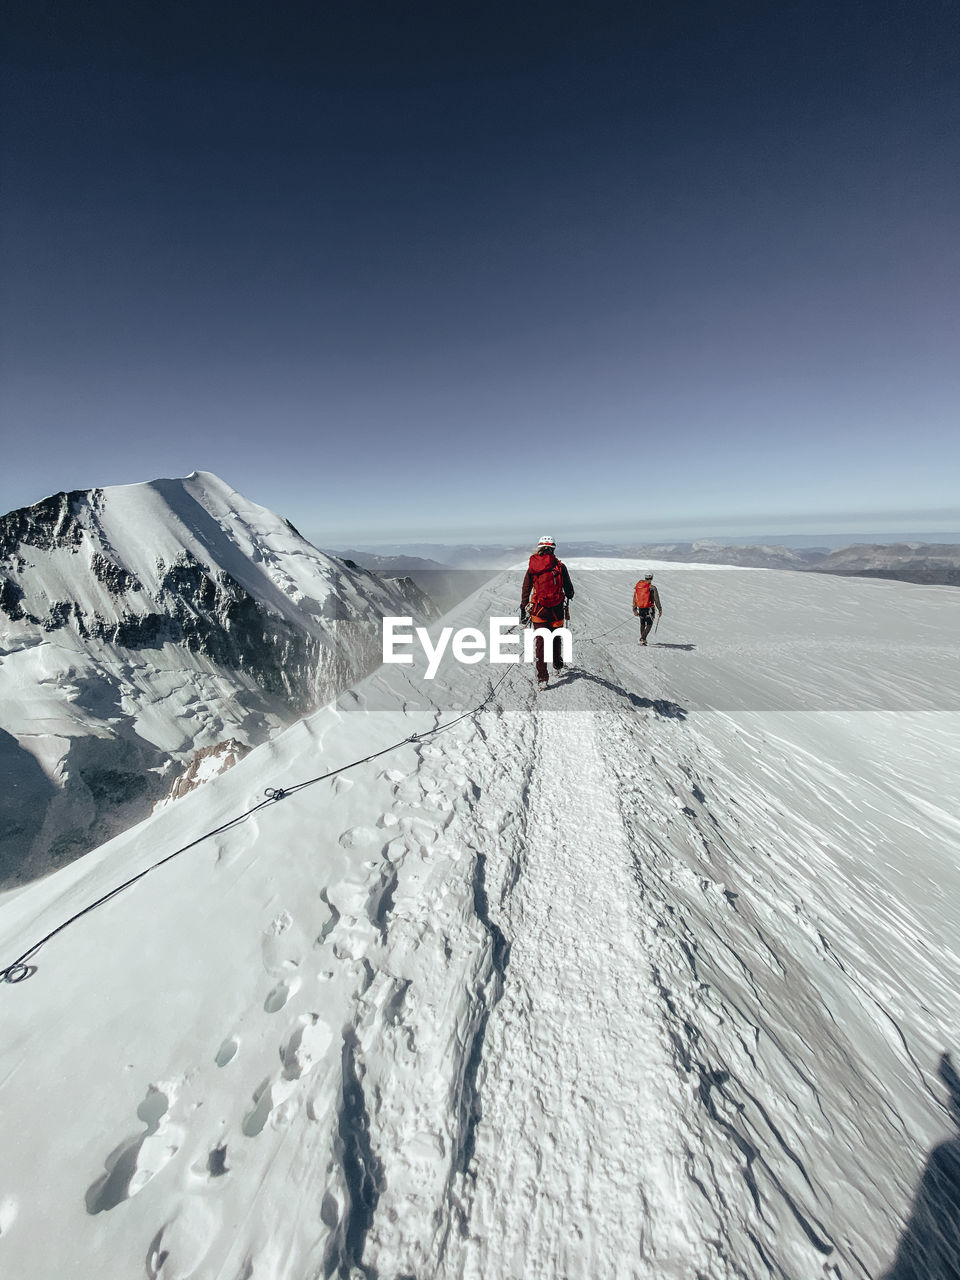 REAR VIEW OF PEOPLE ON SNOW COVERED MOUNTAIN